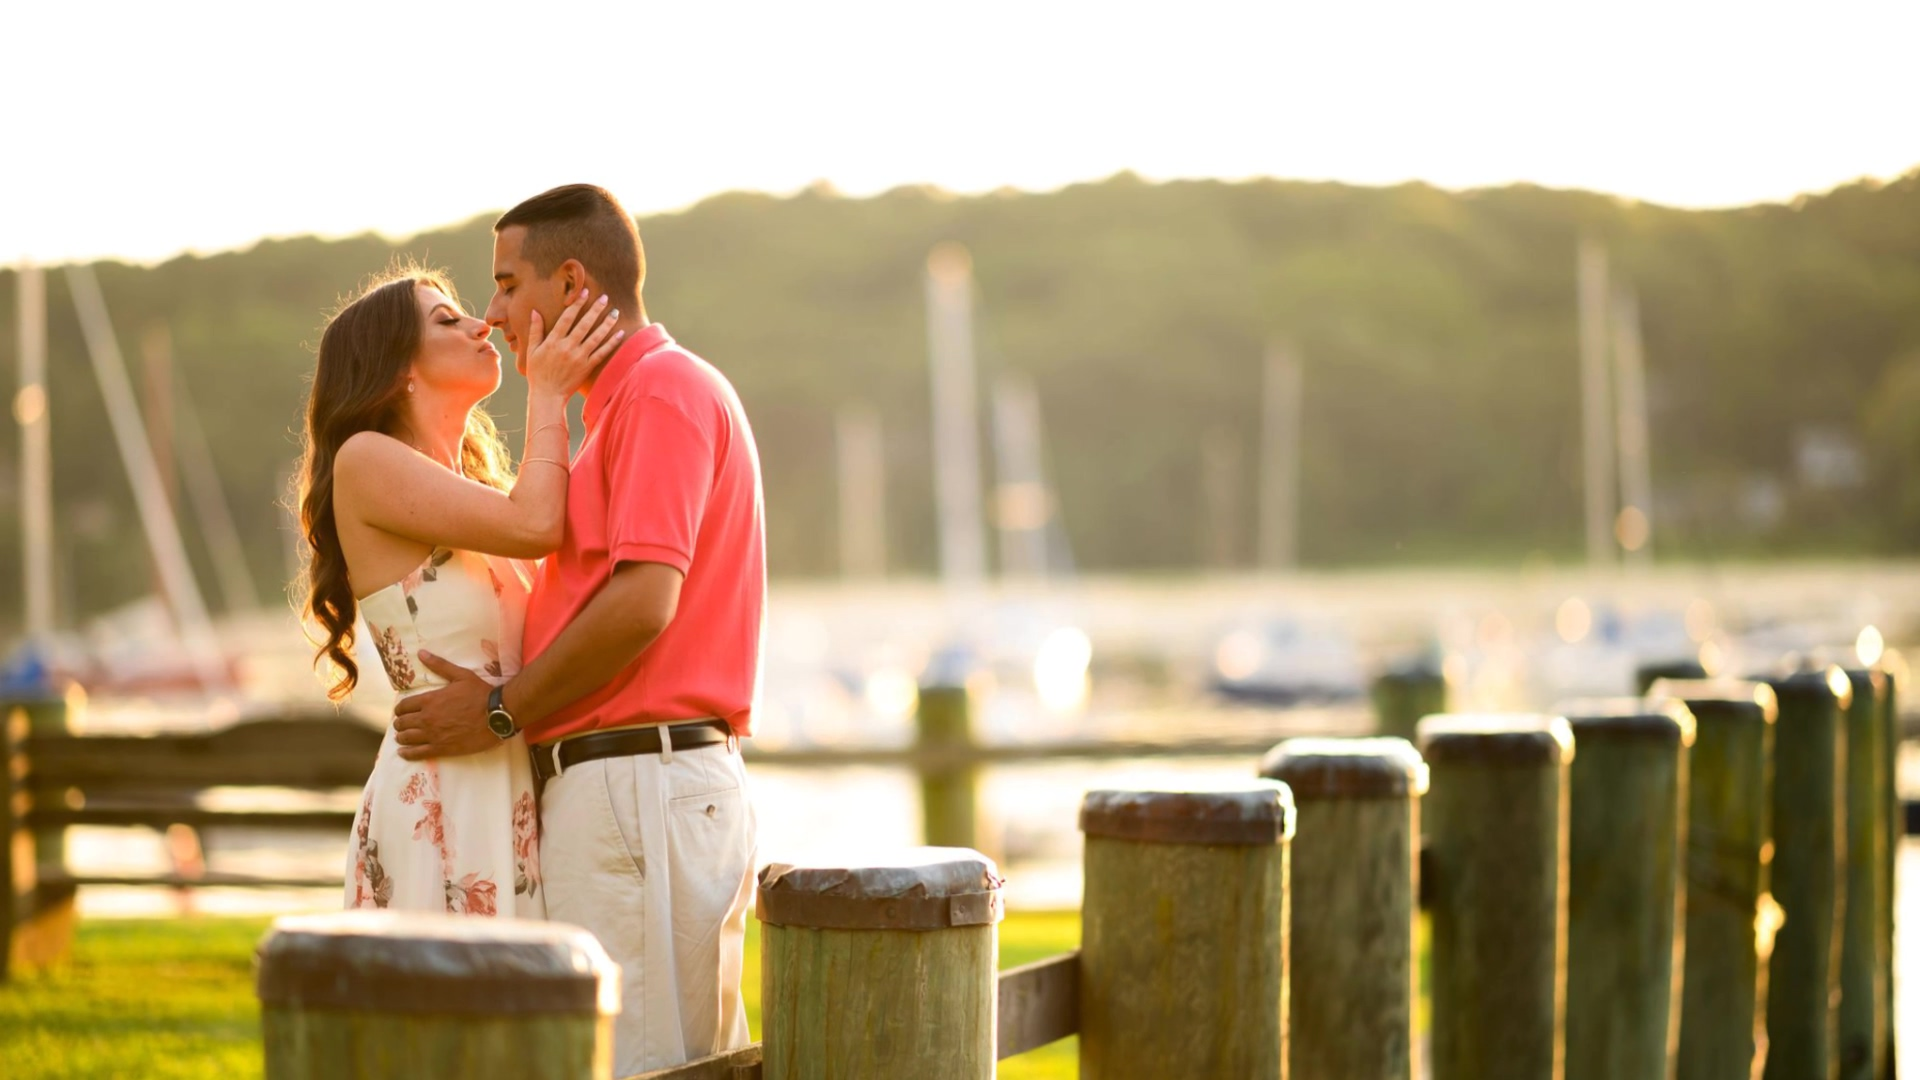 2020_Northport_Harbor_Engagement_Photos_1080p